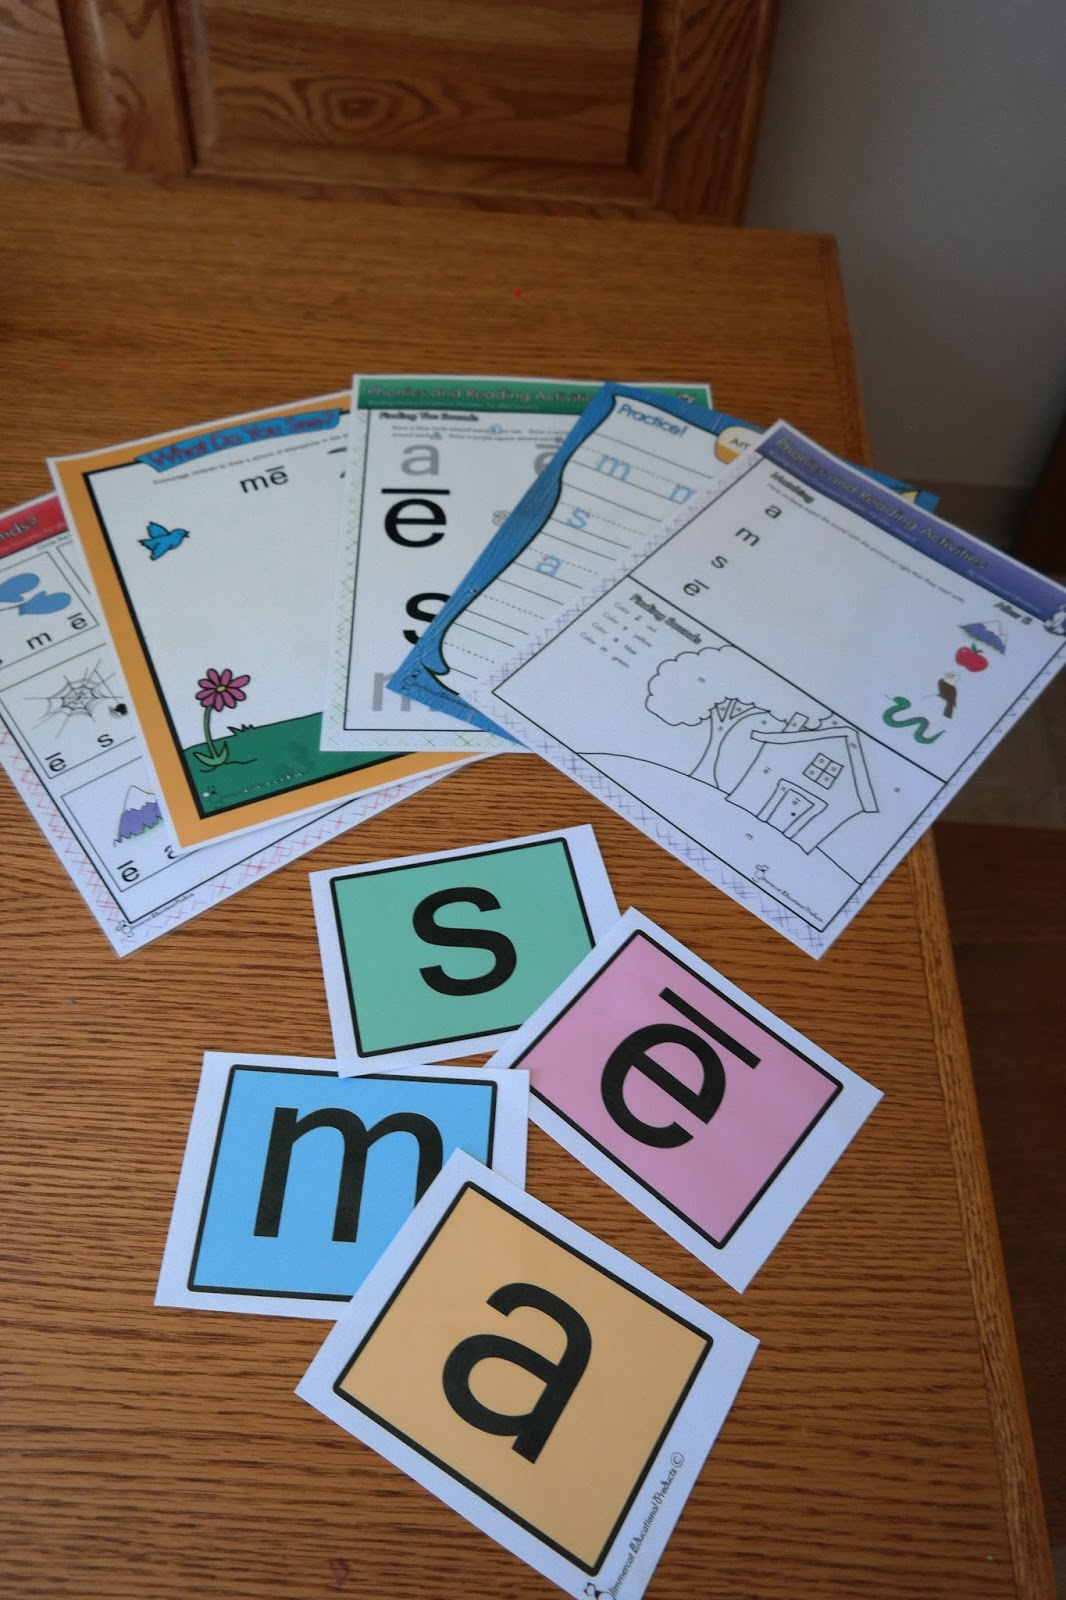 Worksheets Teach Your Child To Read In 100 Easy Lessons Worksheets glimmercat still more worksheets for teach your child to read in since completing lesson 5 we go over the flash cards seen above sounds m a s and long e every morning first t